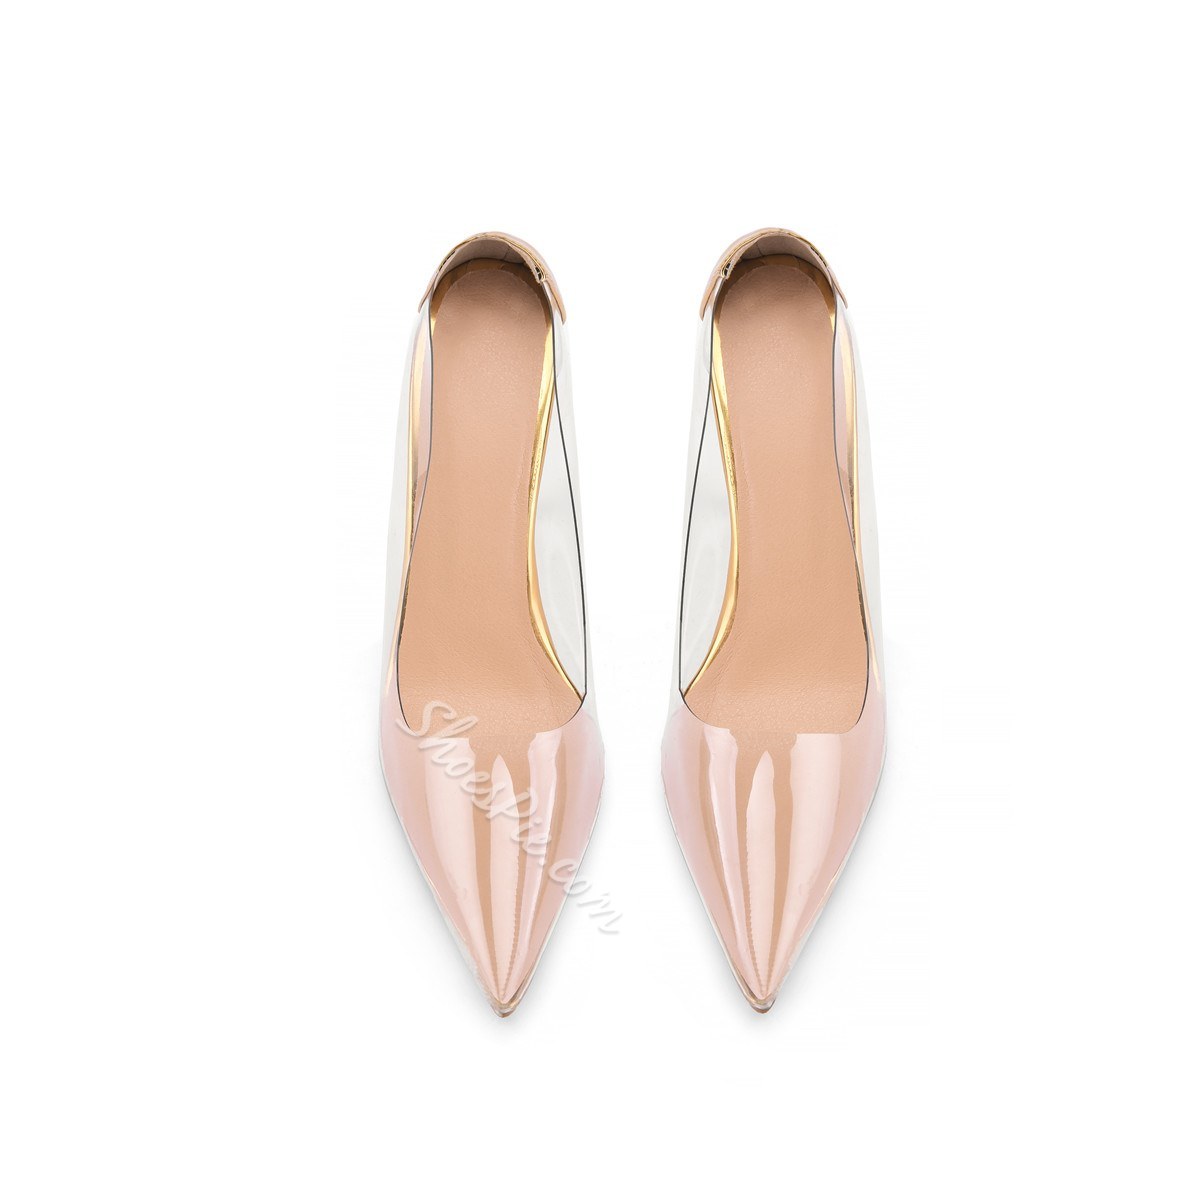 Shoespie Trendy Slip-On Pointed Toe Ultra-High Heel(≥8cm) Thin Shoes